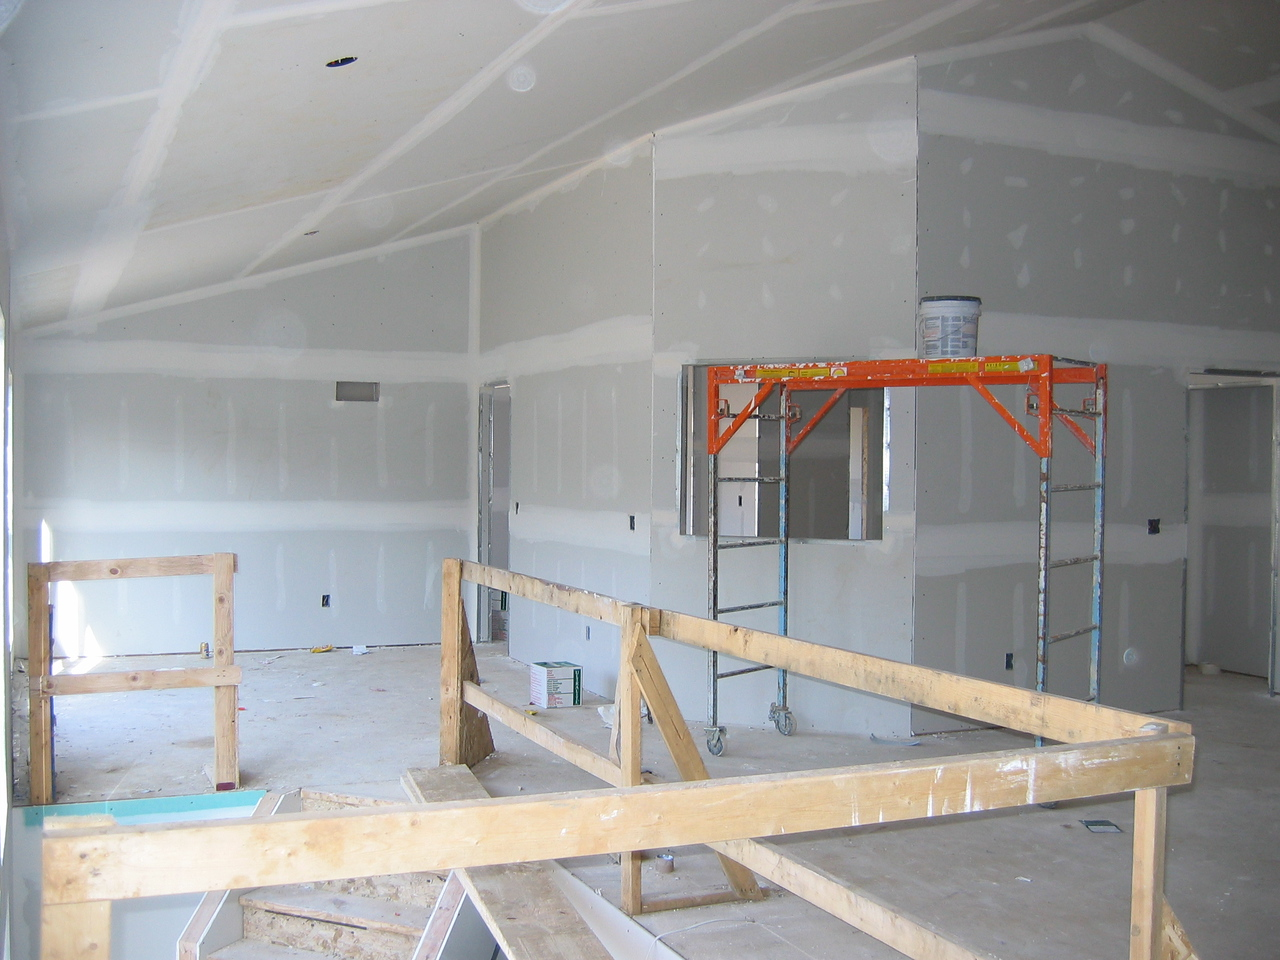 Drywall near Completion